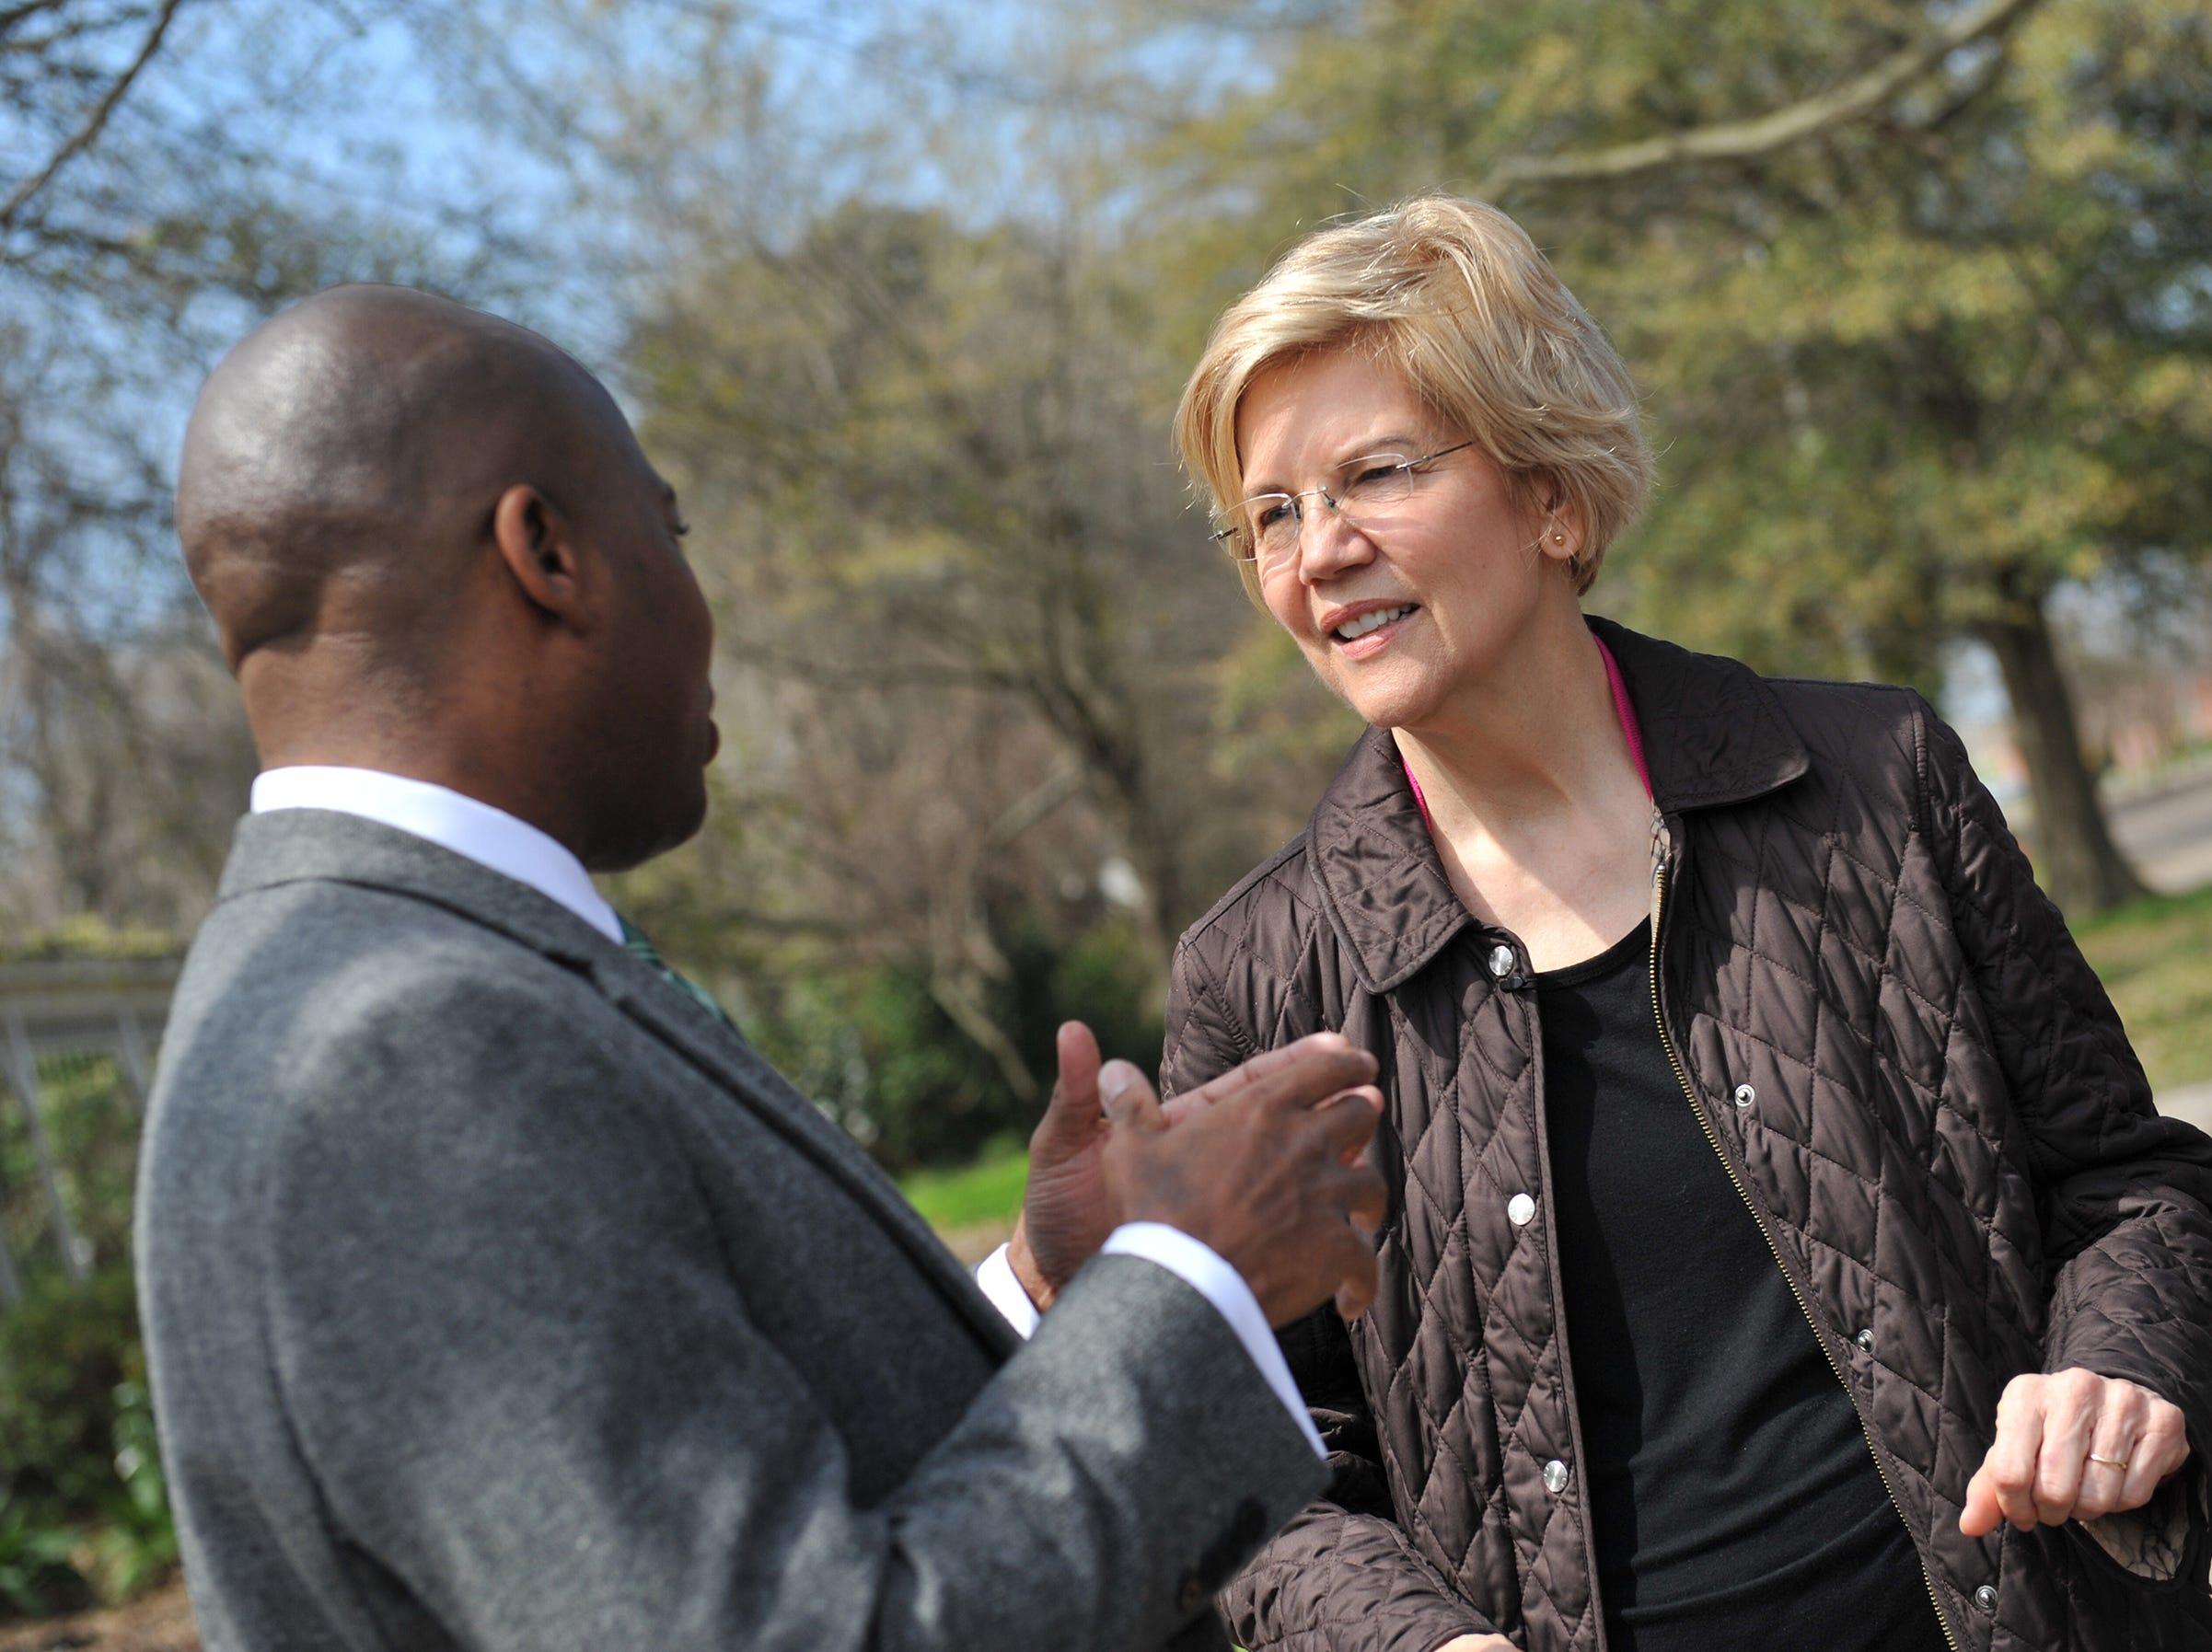 During a Monday, March 18, 2019, walking tour of Central Street in Greenville, Presidential candidate Sen. Elizabeth Warren, D-Mass., lis tens to Mayor Erick Simmons as he discusses the progress the city has made with housing issues and how much still needs to be done. Central Street, once filled, is now left with vacant houses and empty lots. While in Greenville, Warren promoted the affordable housing bill she has rolled out as part of her 2020 campaign for presidency.